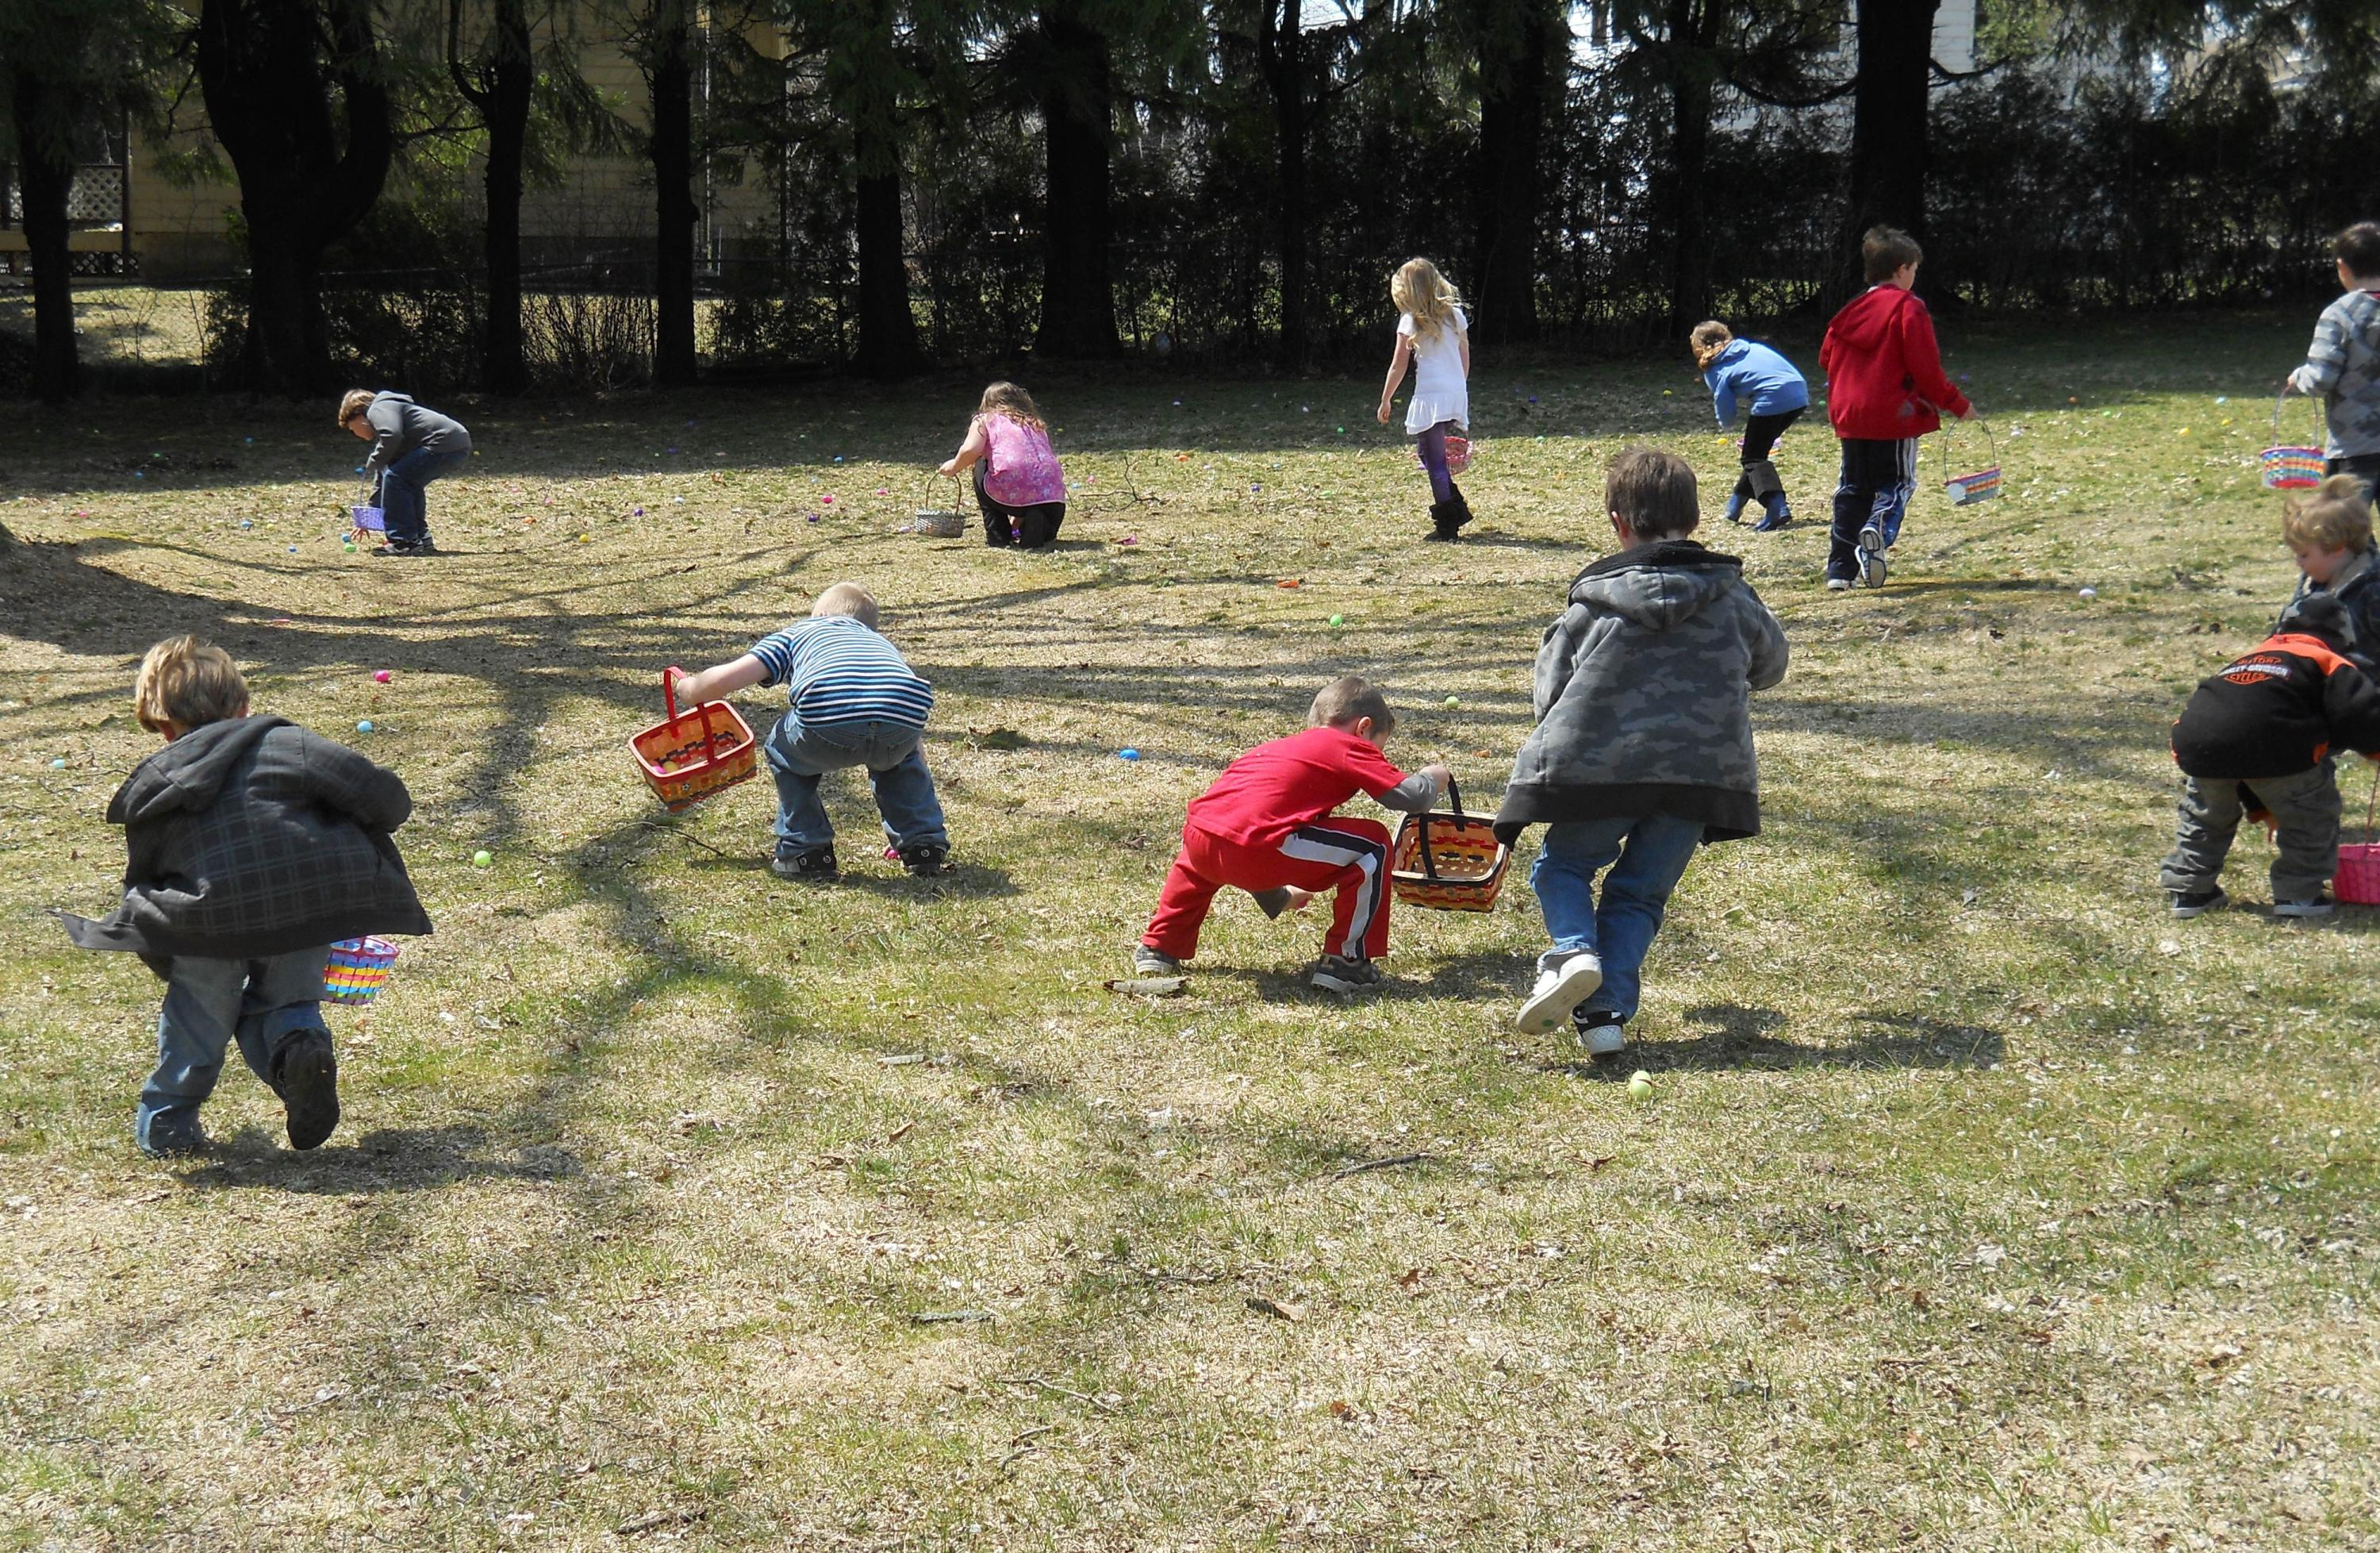 several small children in a park picking up easter eggs in the grass